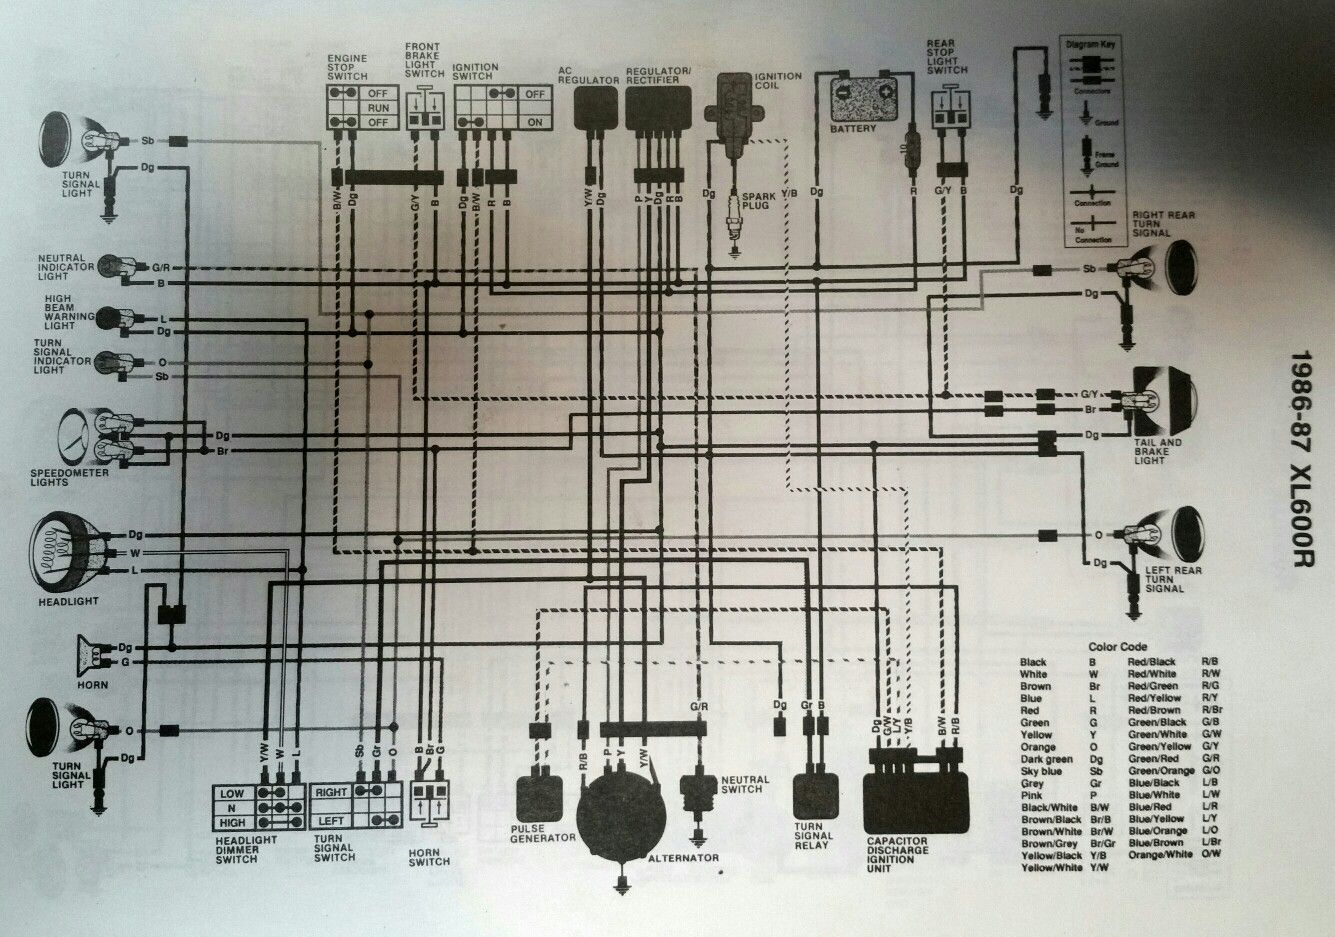 wiring diagram for 1986 honda xl 600 r xl600r electrical rh pinterest com  1986 honda xl600r wiring diagram 1986 honda xl600r wiring diagram